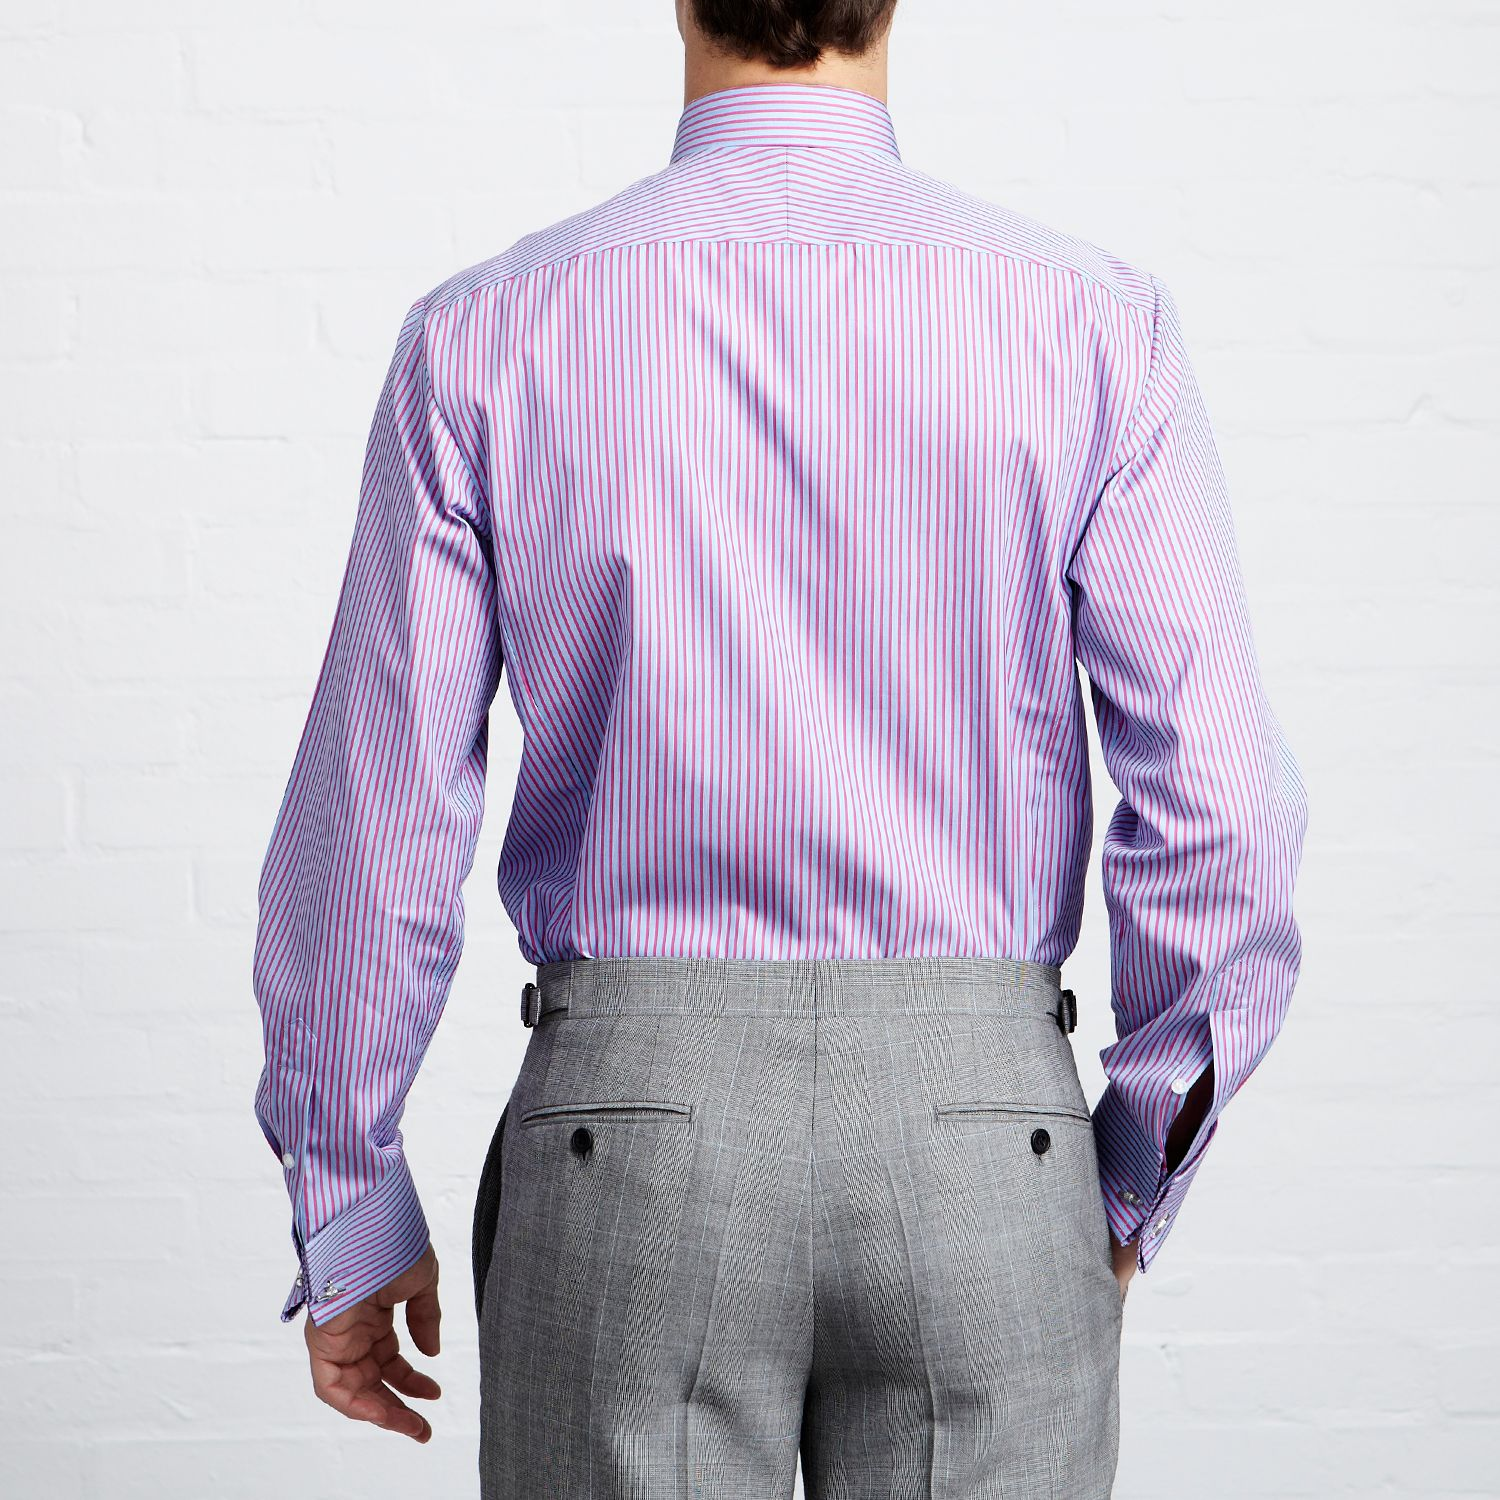 hugo boss slim shirts versus thomas pink